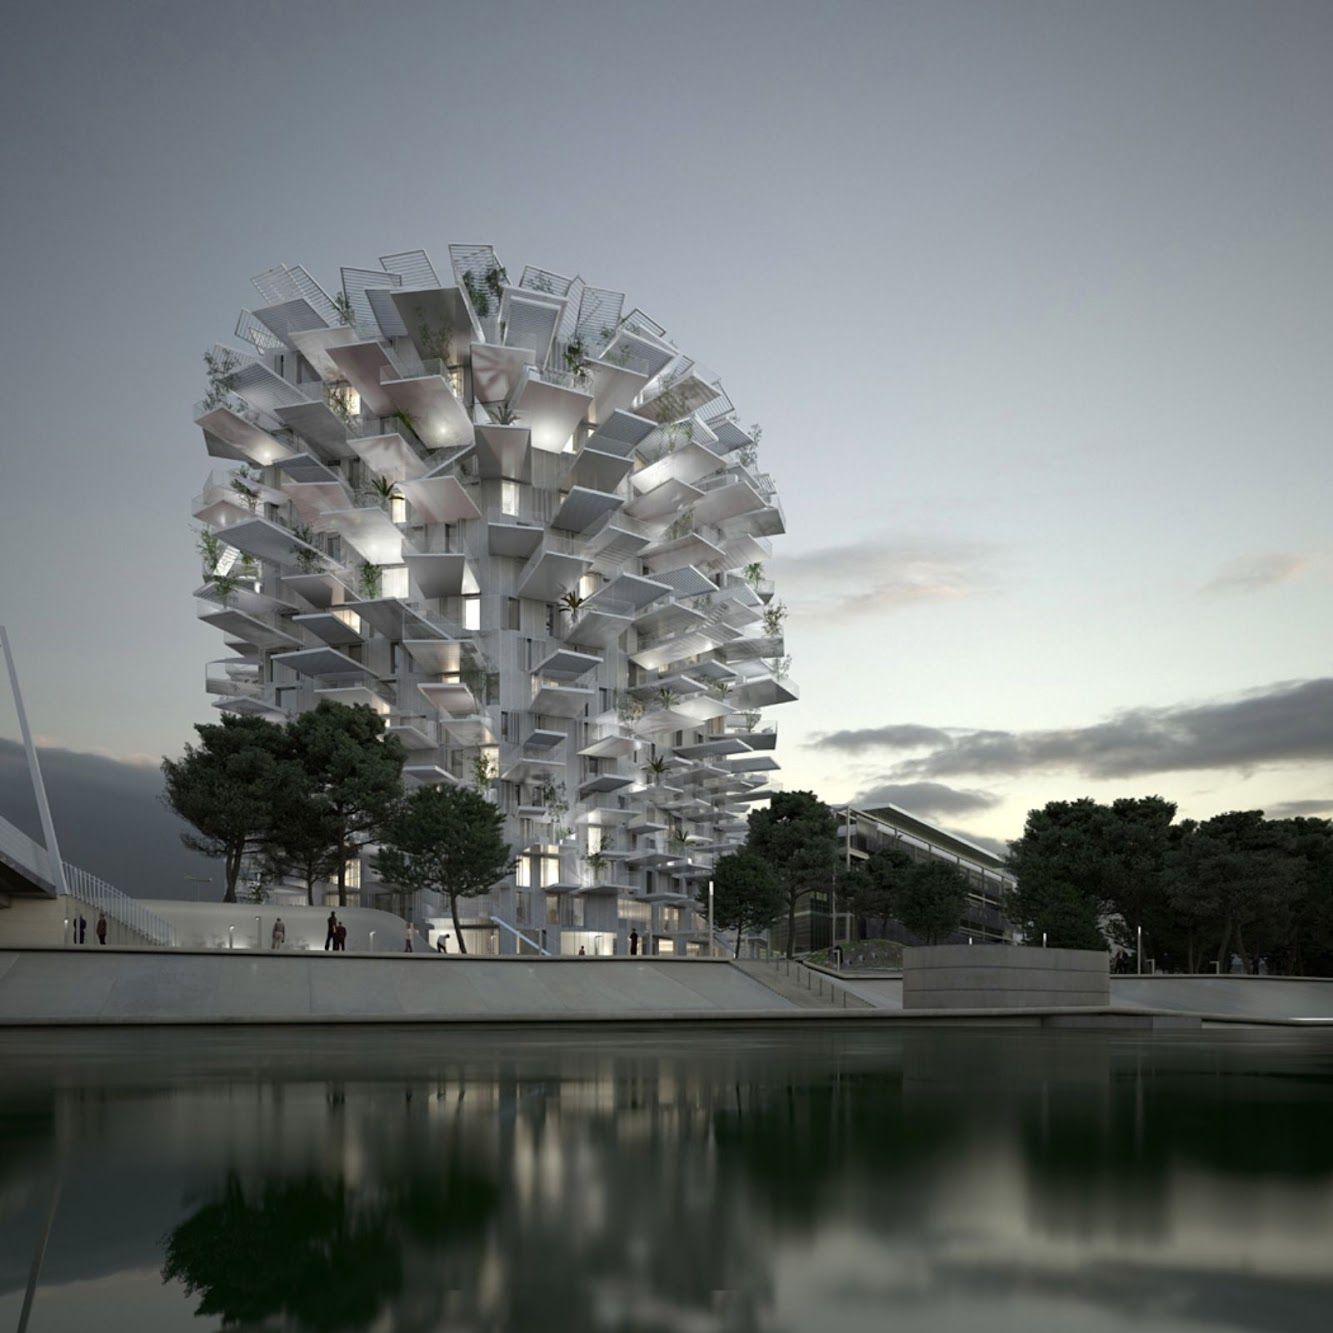 Folie Architecturale of the 21st century by Sou